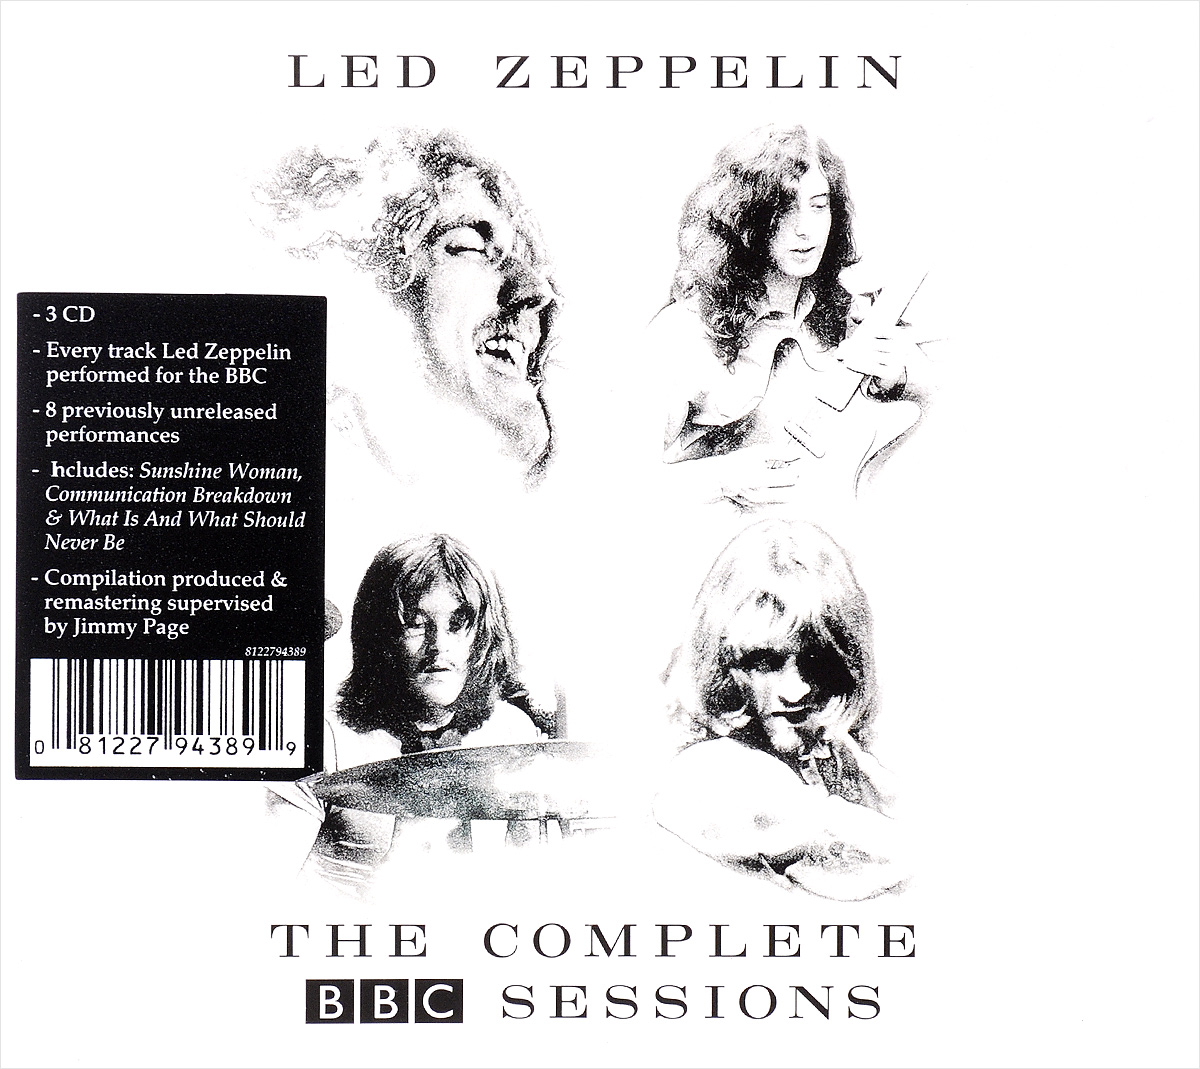 Led Zeppelin Led Zeppelin. The Complete BBC Sessions (3 CD) led zeppelin led zeppelin original recording remastered 3